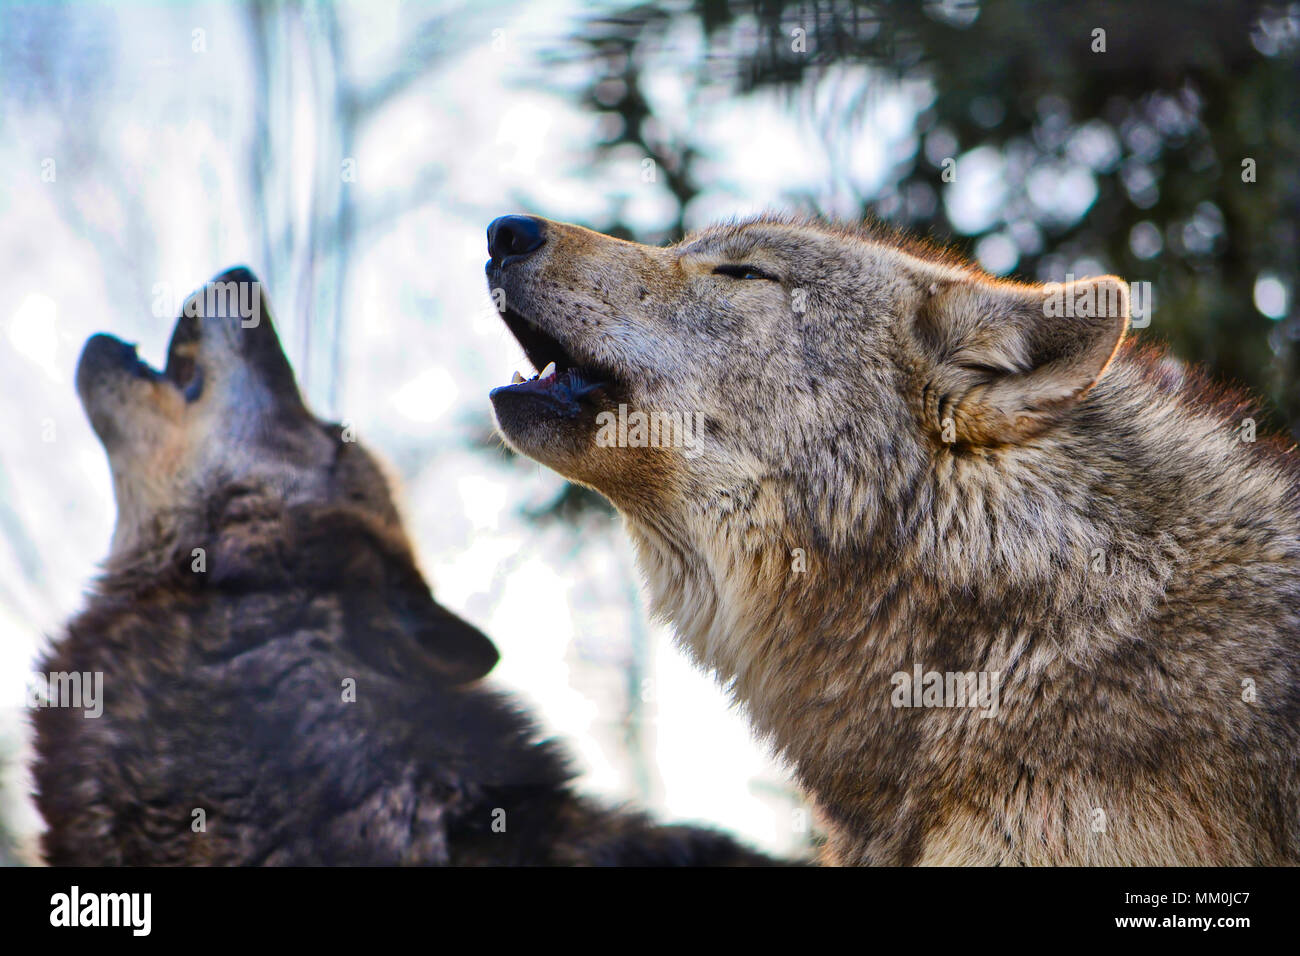 Wolves Howling Stock Photos & Wolves Howling Stock Images ...